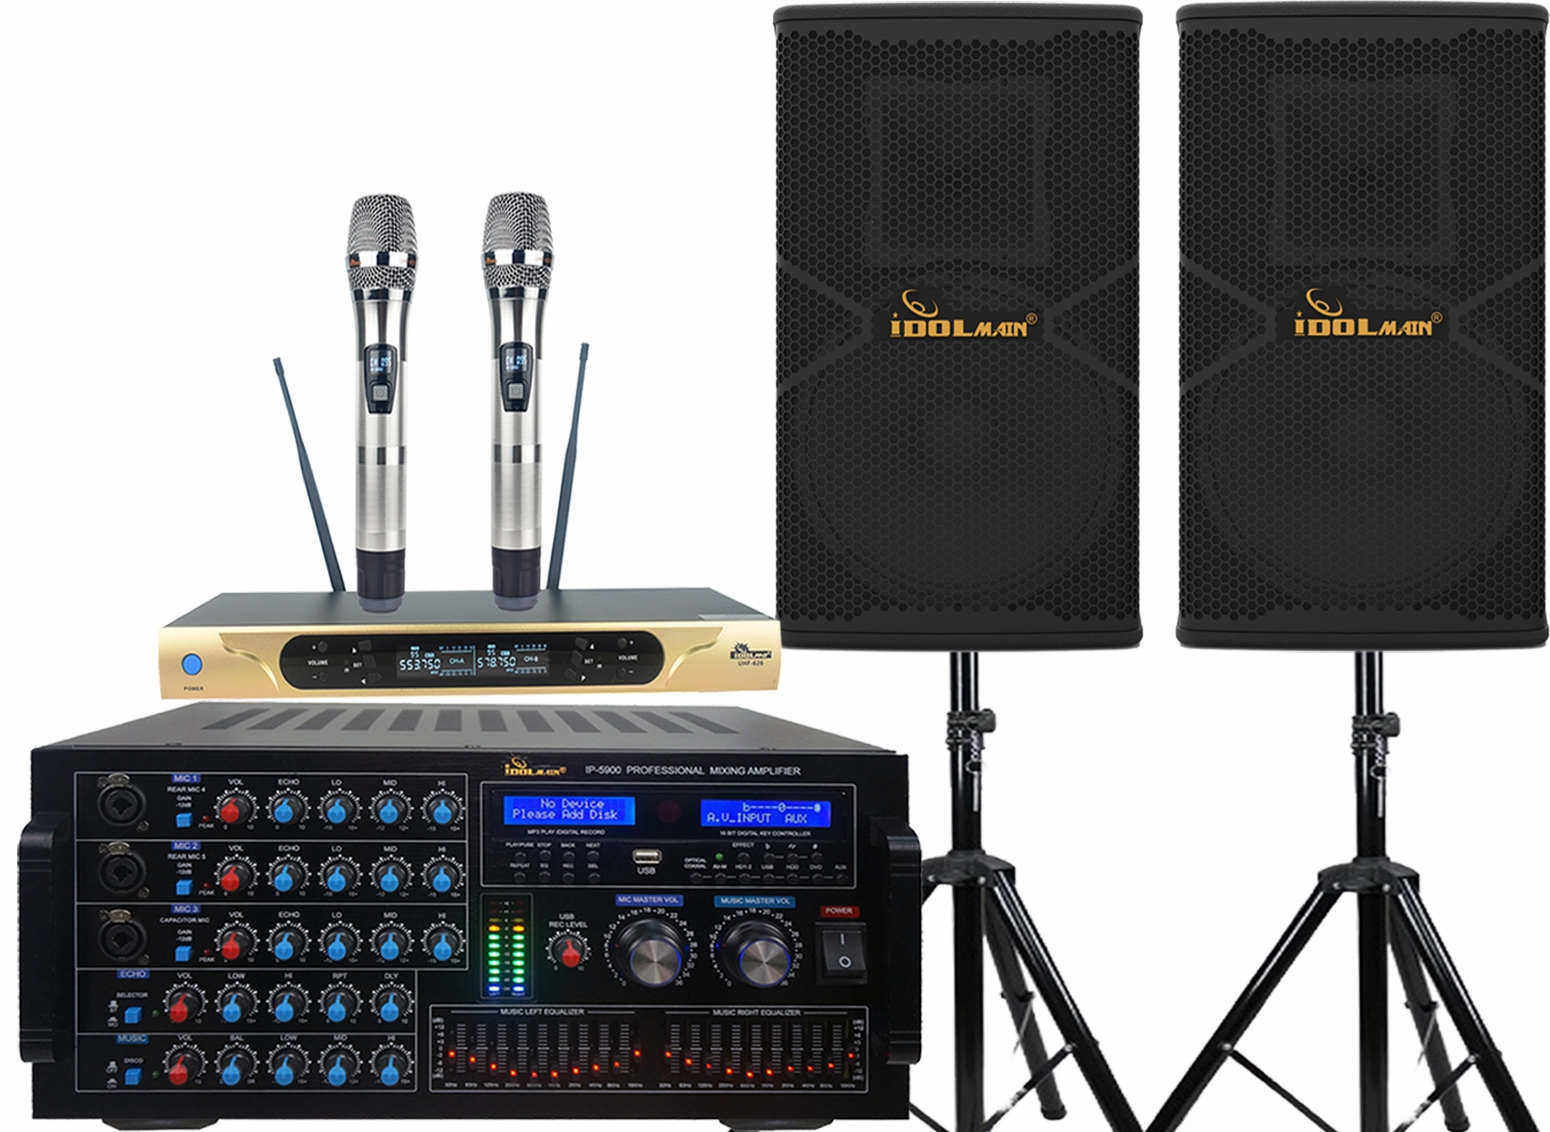 "<font color="" blue"">PACKAGE 8 </font> -- IPS-P18 Speakers, IP-5900 Mixing Amplifier,UHF-626 Wireless MicrophoneS"